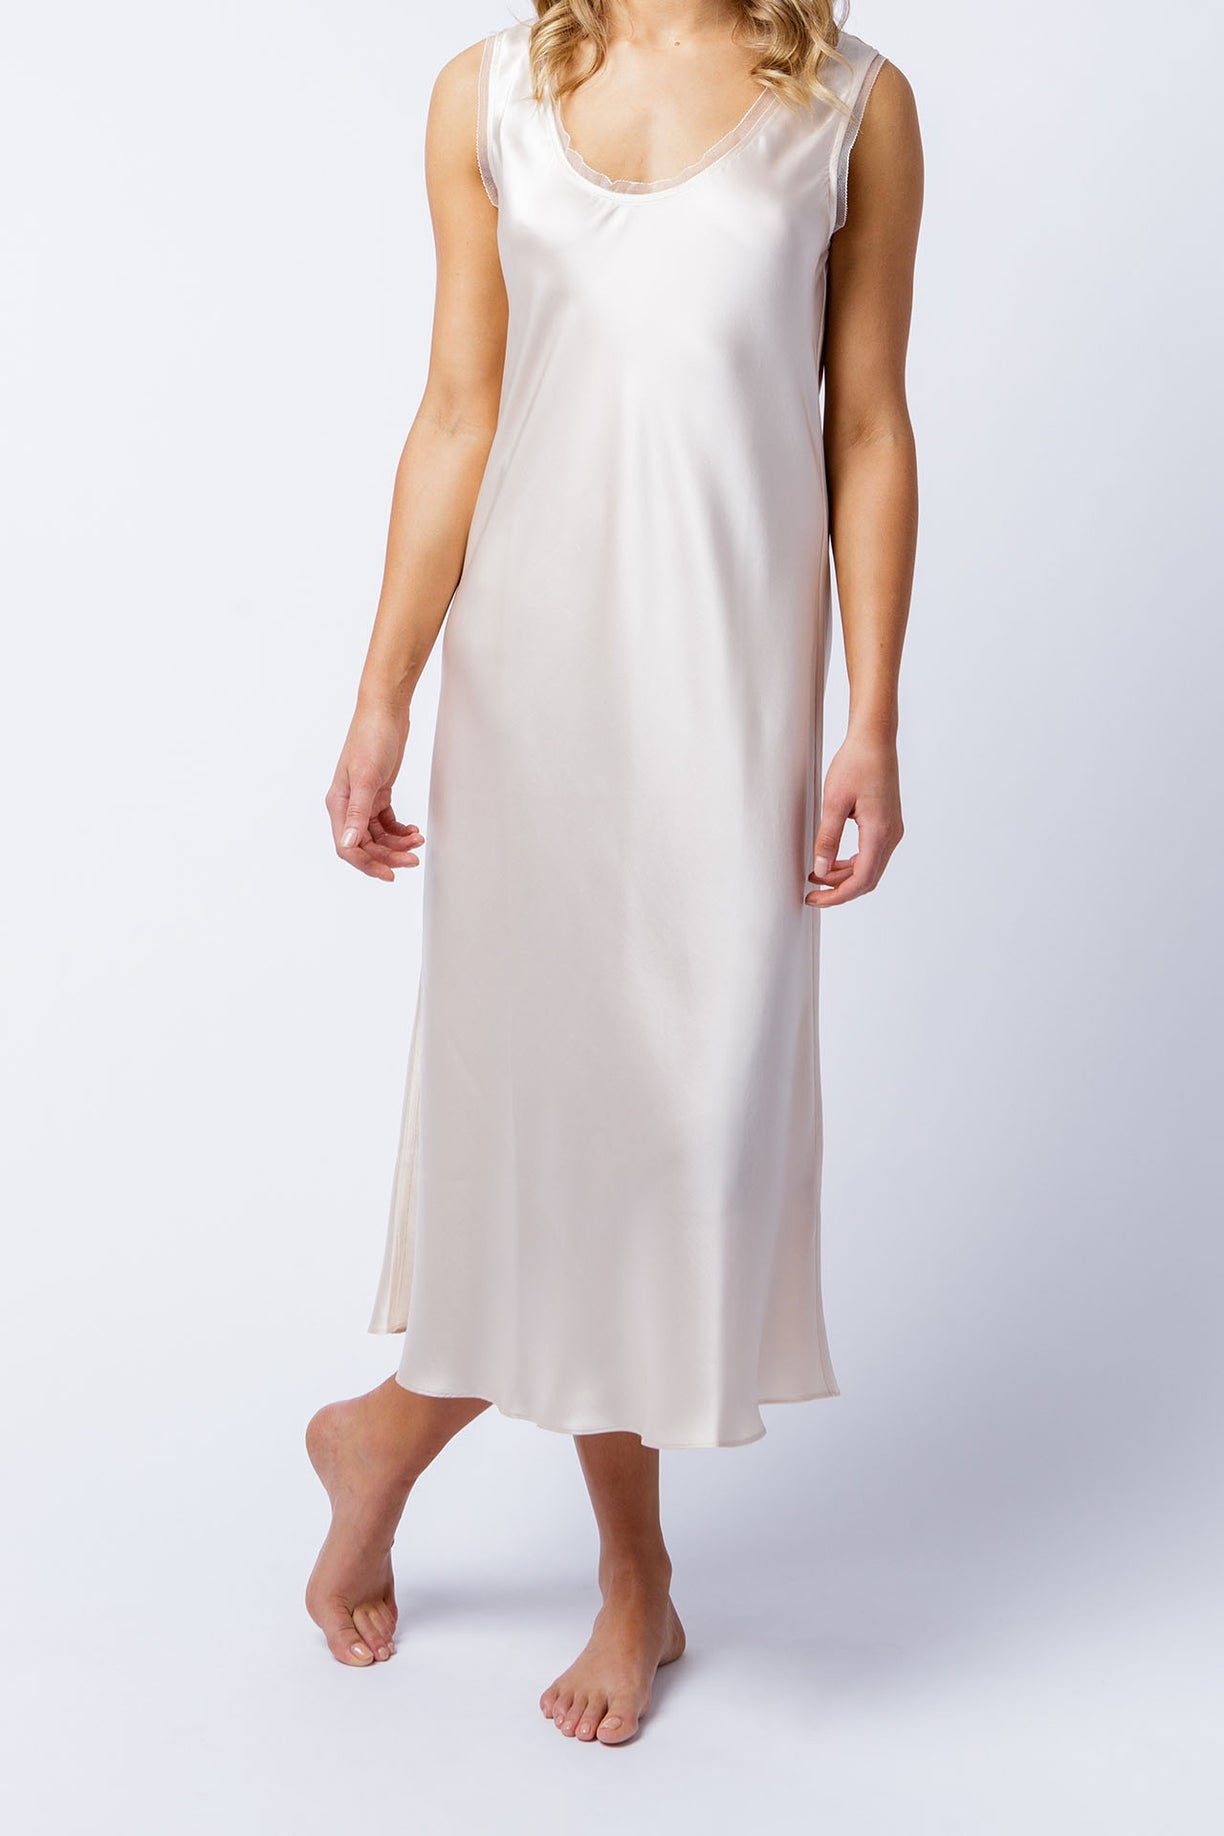 Cate dress in alabaster, front